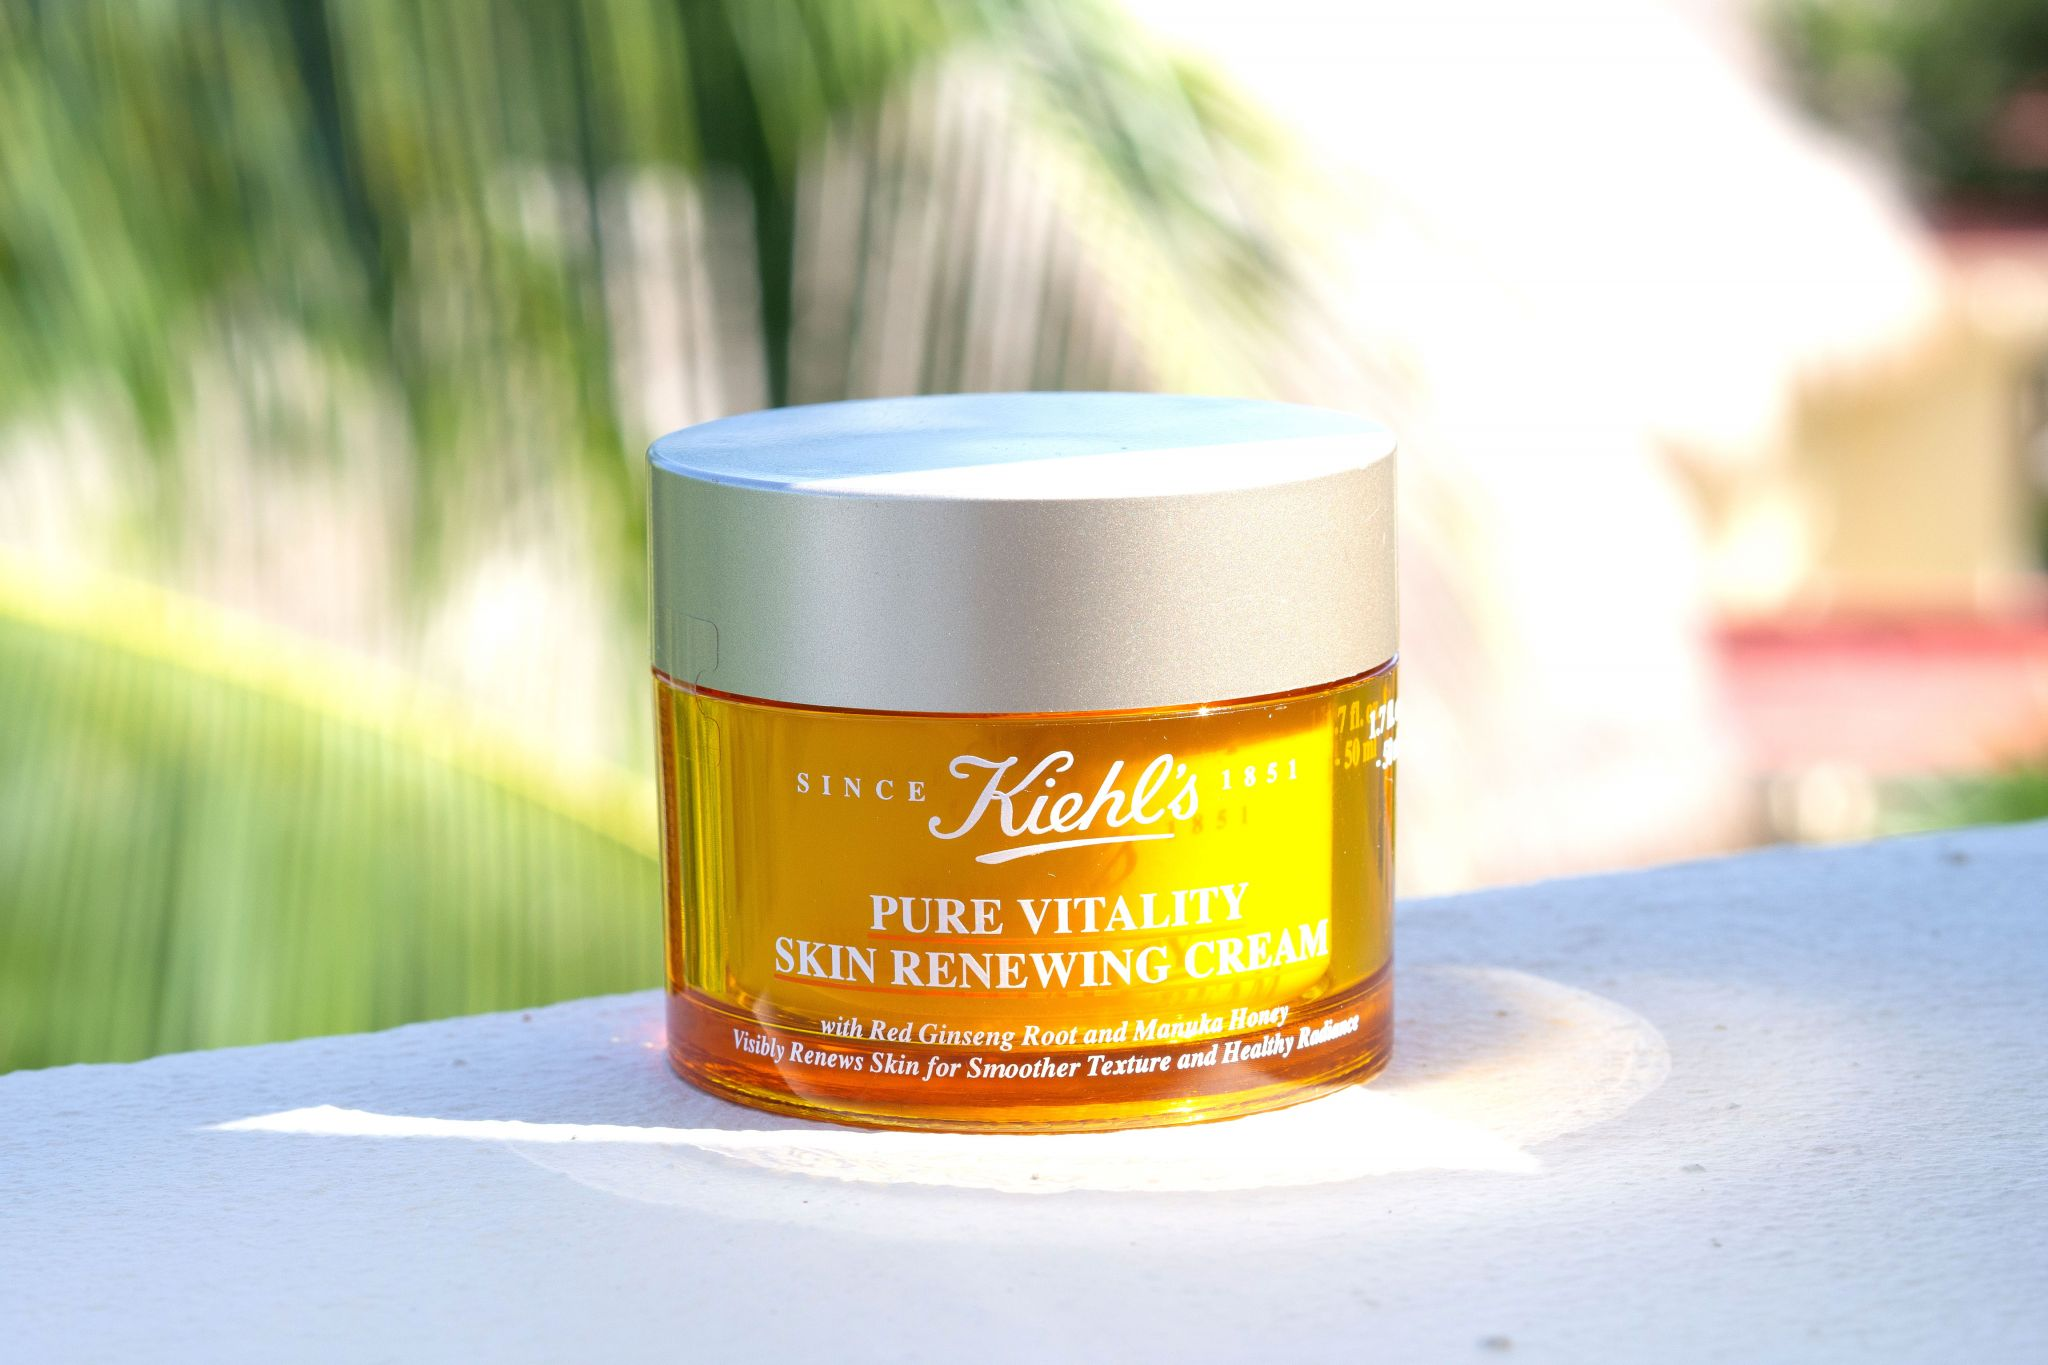 Kiehl's Review Pure Vitality Skin Renewing Cream